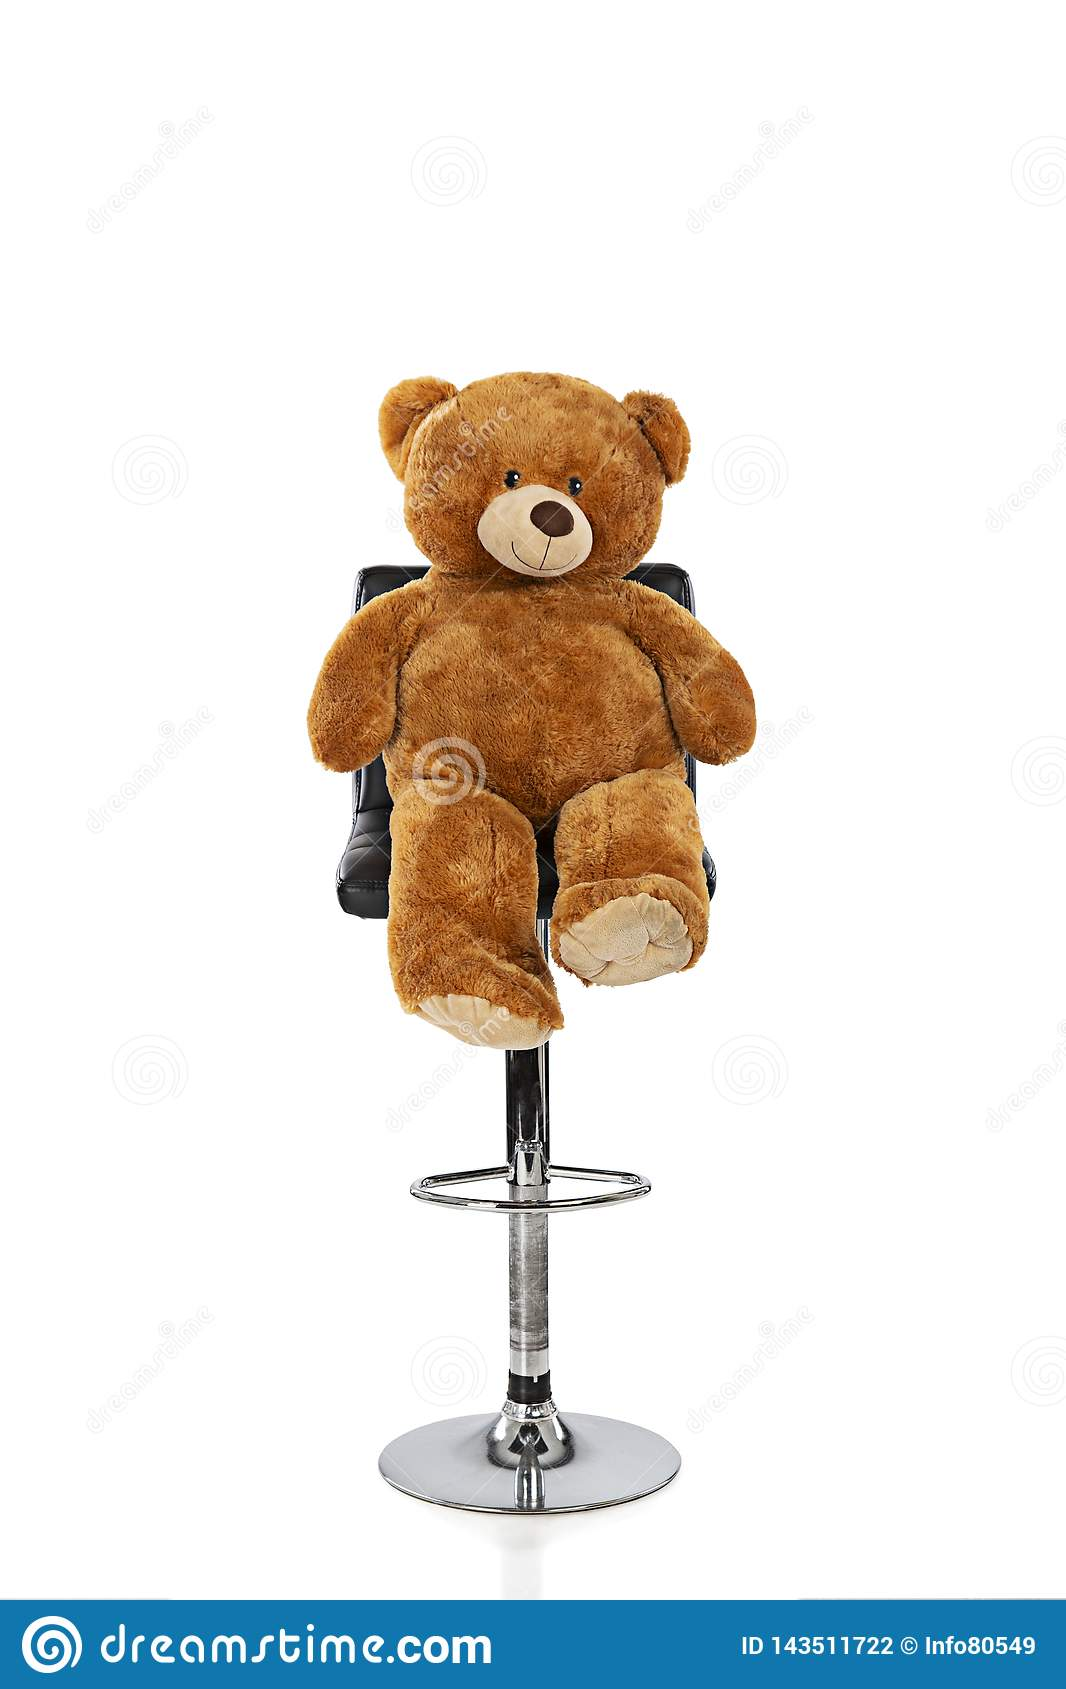 Teddy bear sitting on a stool with a white background